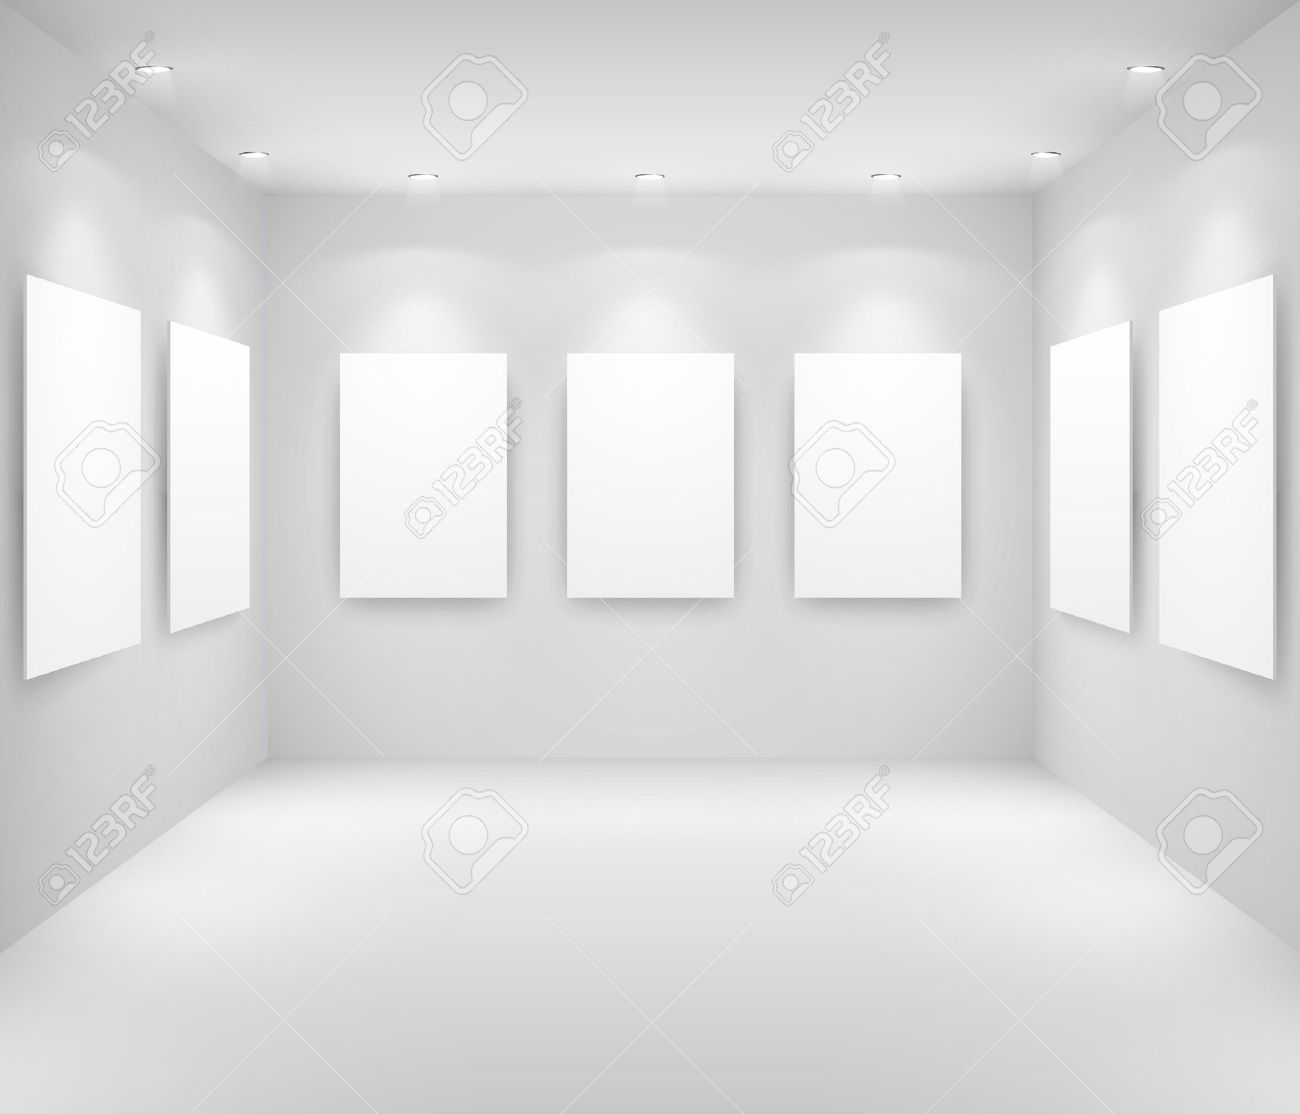 gallery interior with empty frames on wall stock vector 9566423